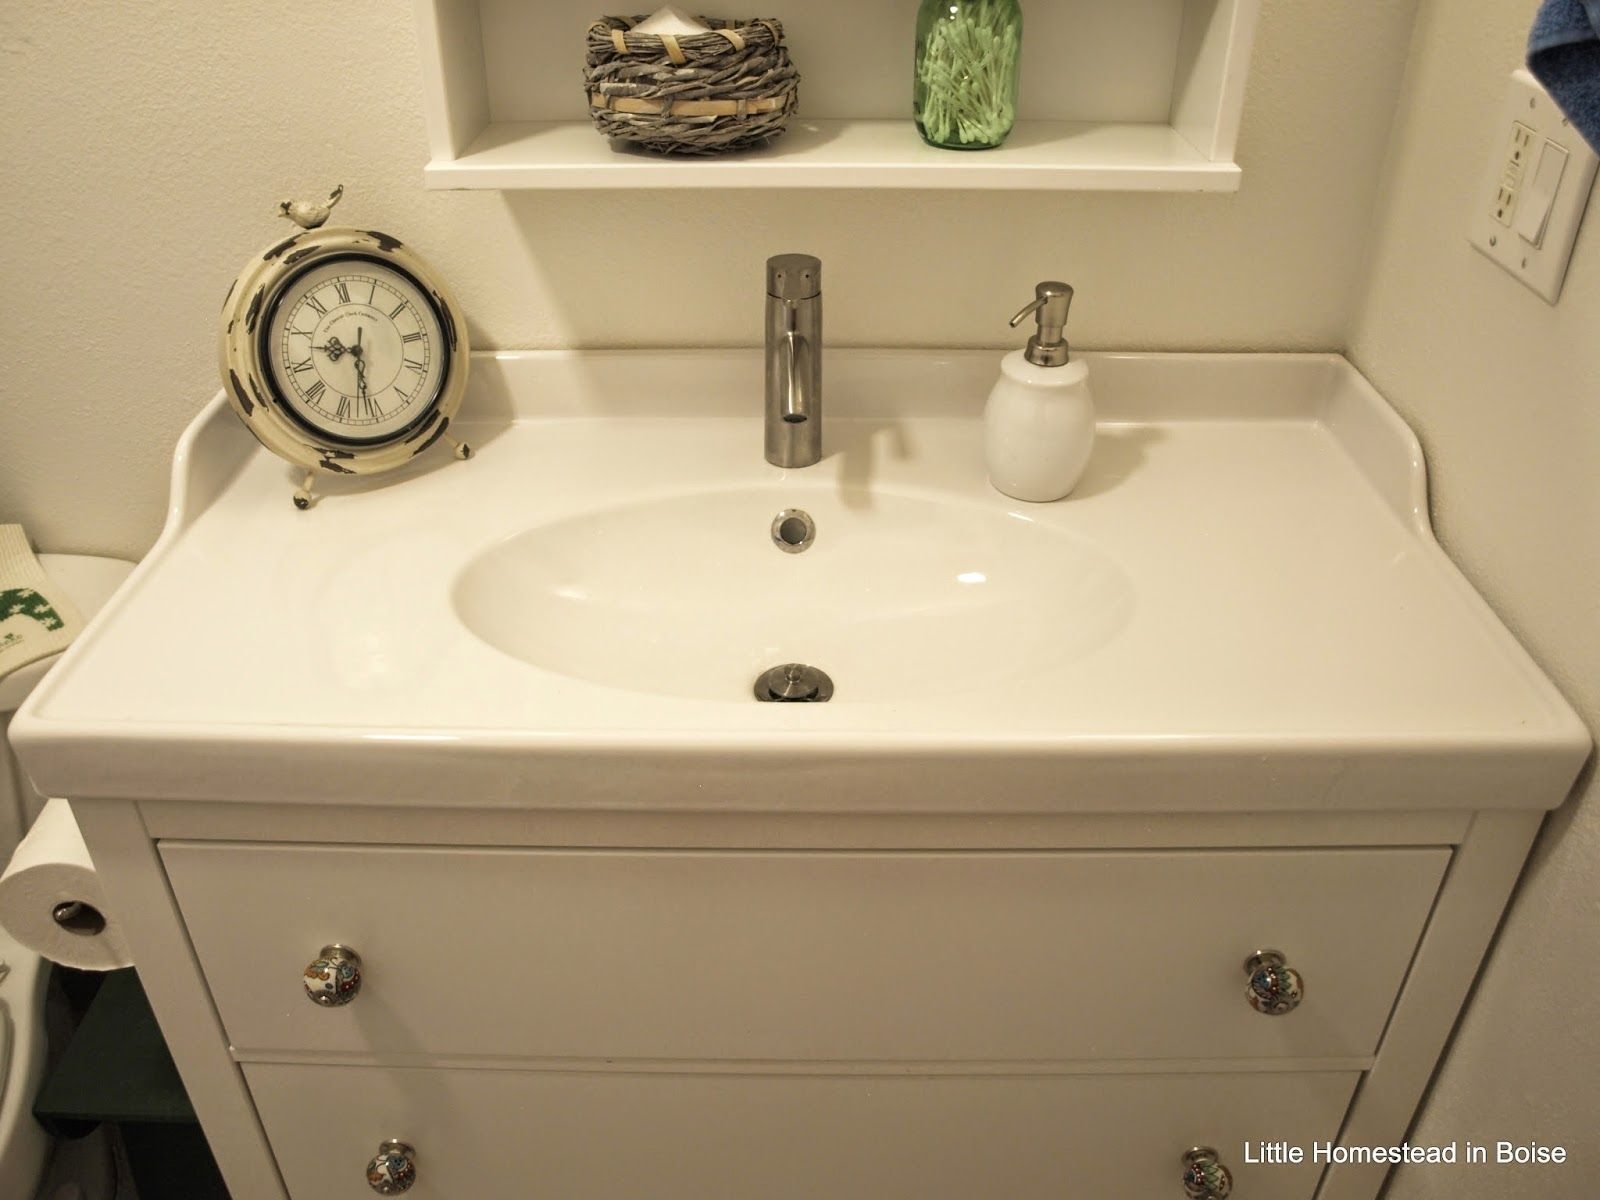 Ikea Hemnes Sink Cabinet Combo Faucet From Ikea Knobs From Cost Plus Our Ikea Bathroom